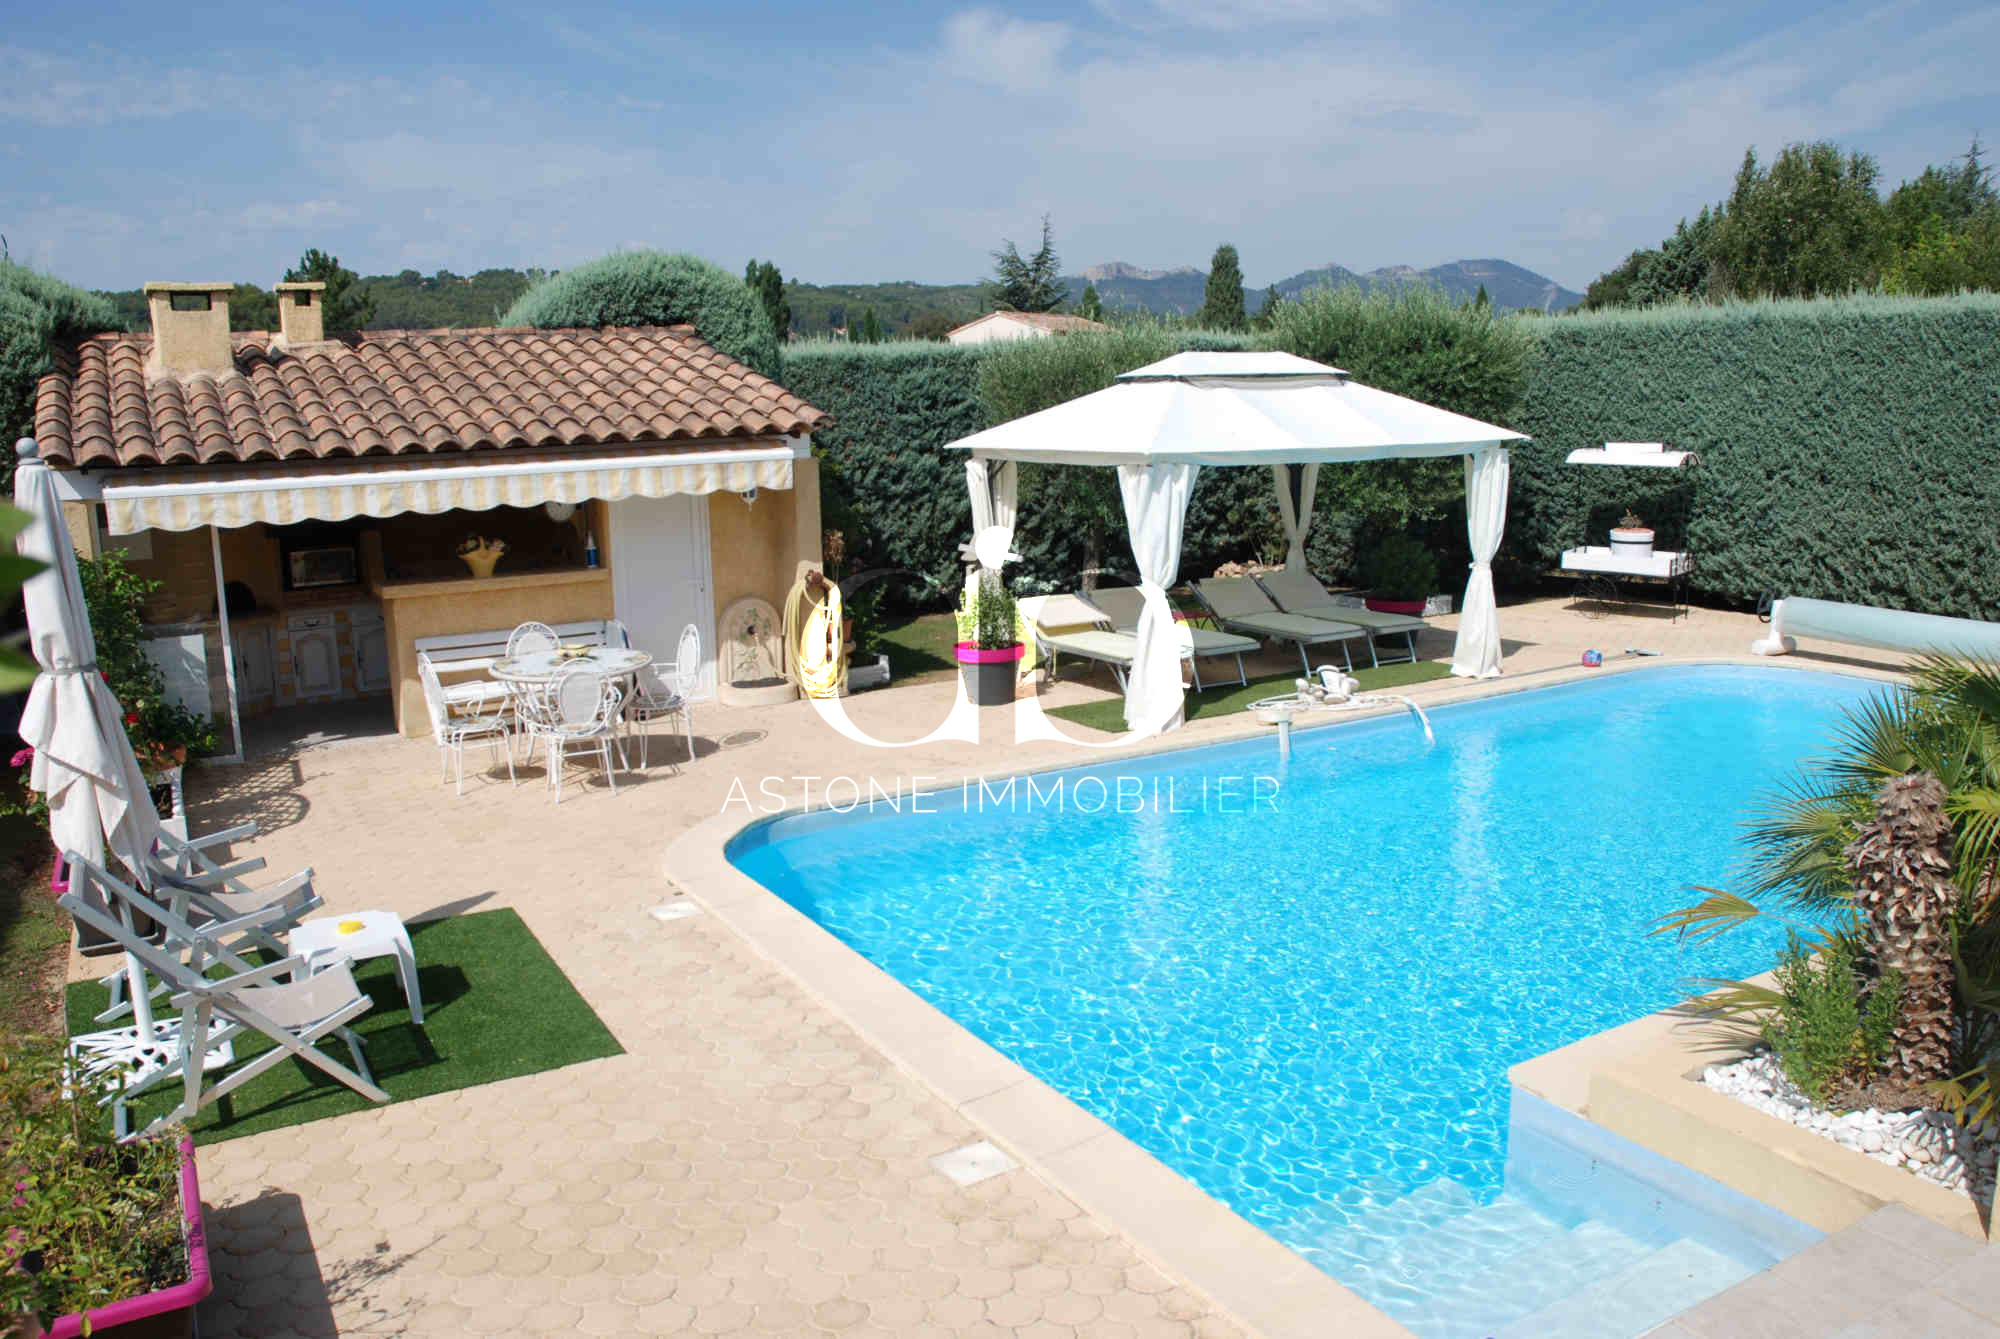 La bouilladisse nice villa in a sought after area for sale for Piscine orsole